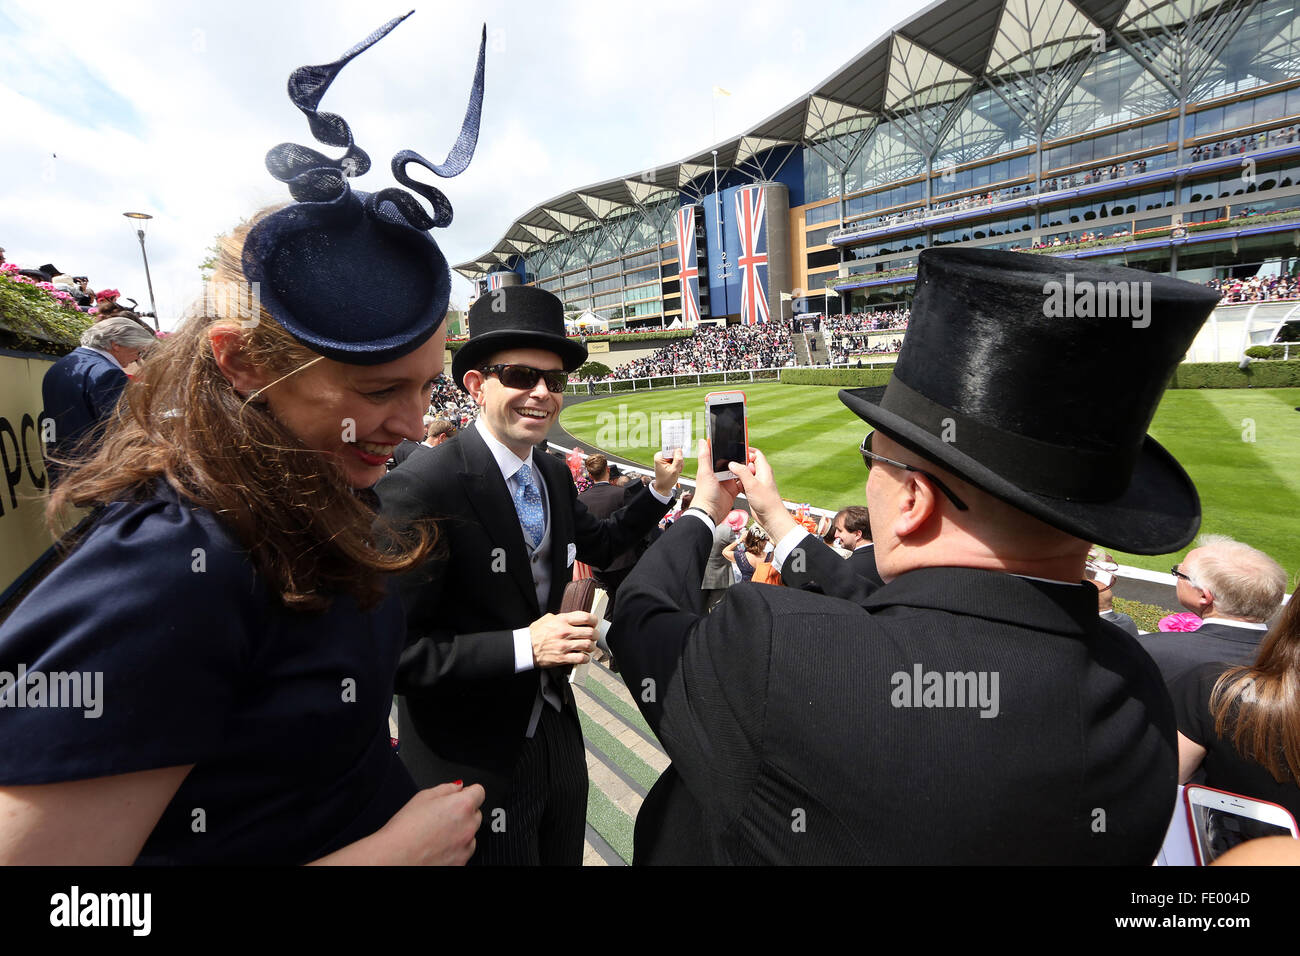 Ascot, United Kingdom, man with cylinder photographed a betting receipt - Stock Image